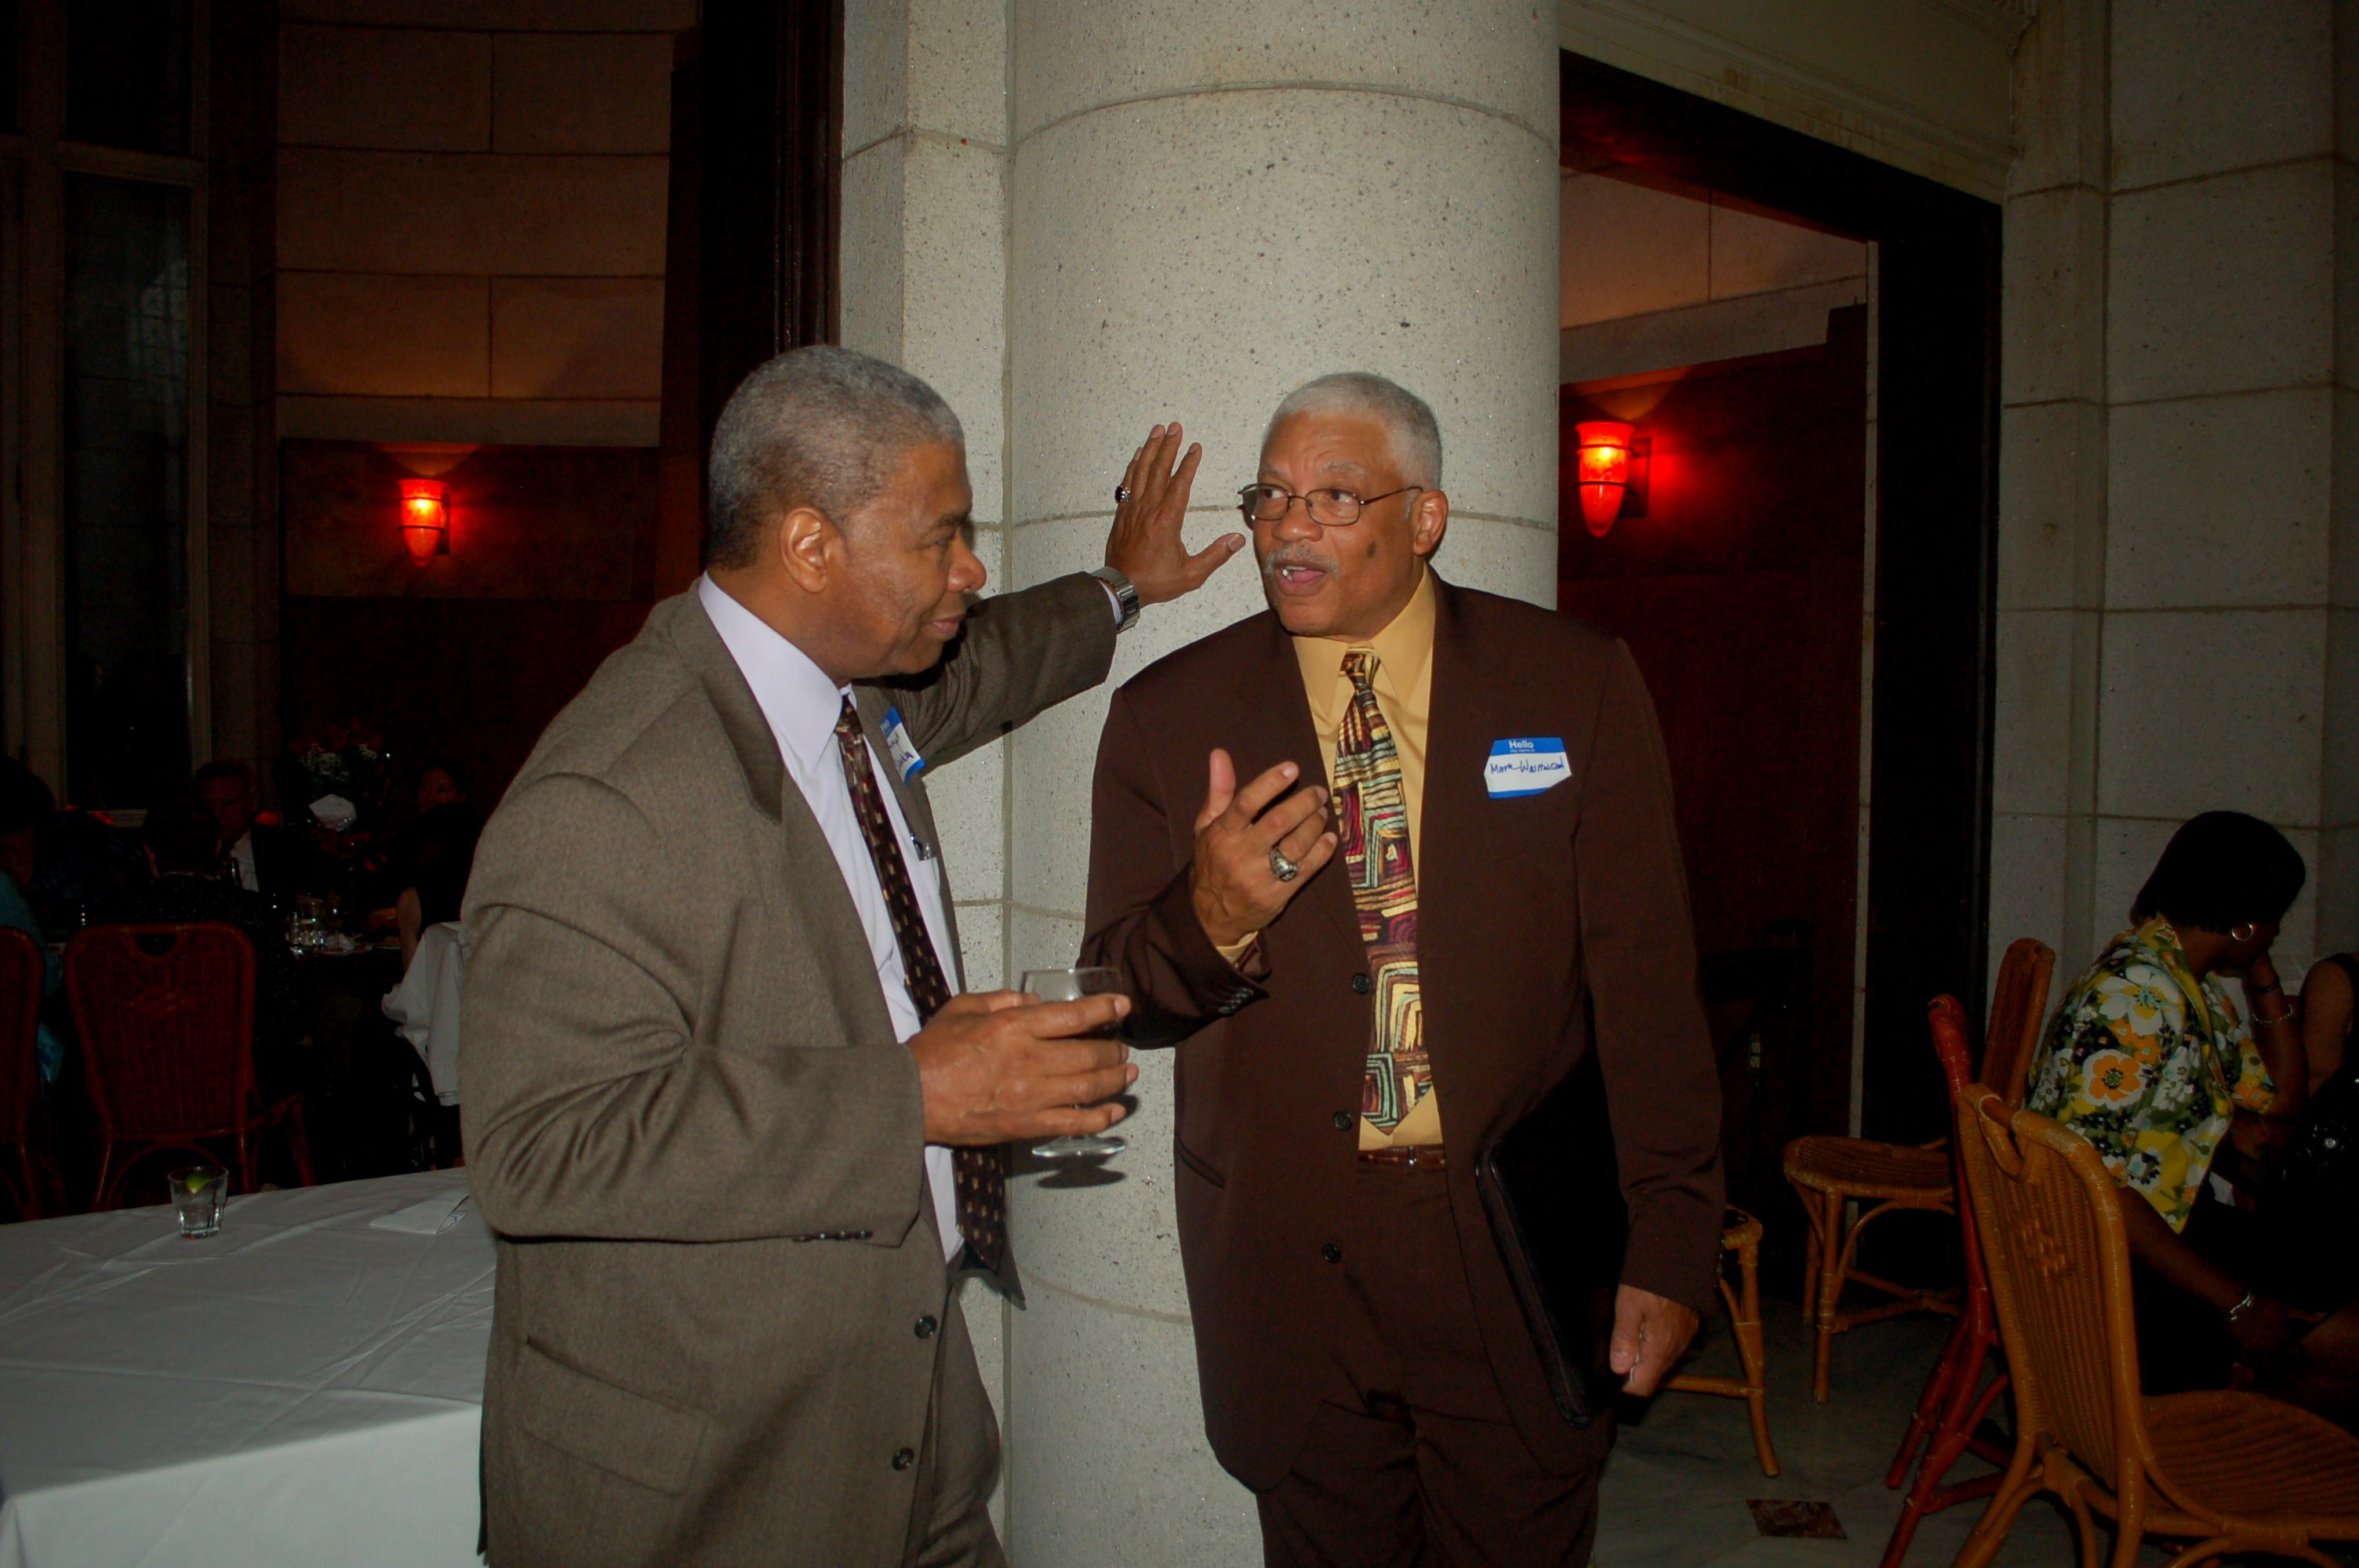 05-2010-joe-searles-and-mr-washington-2.jpg